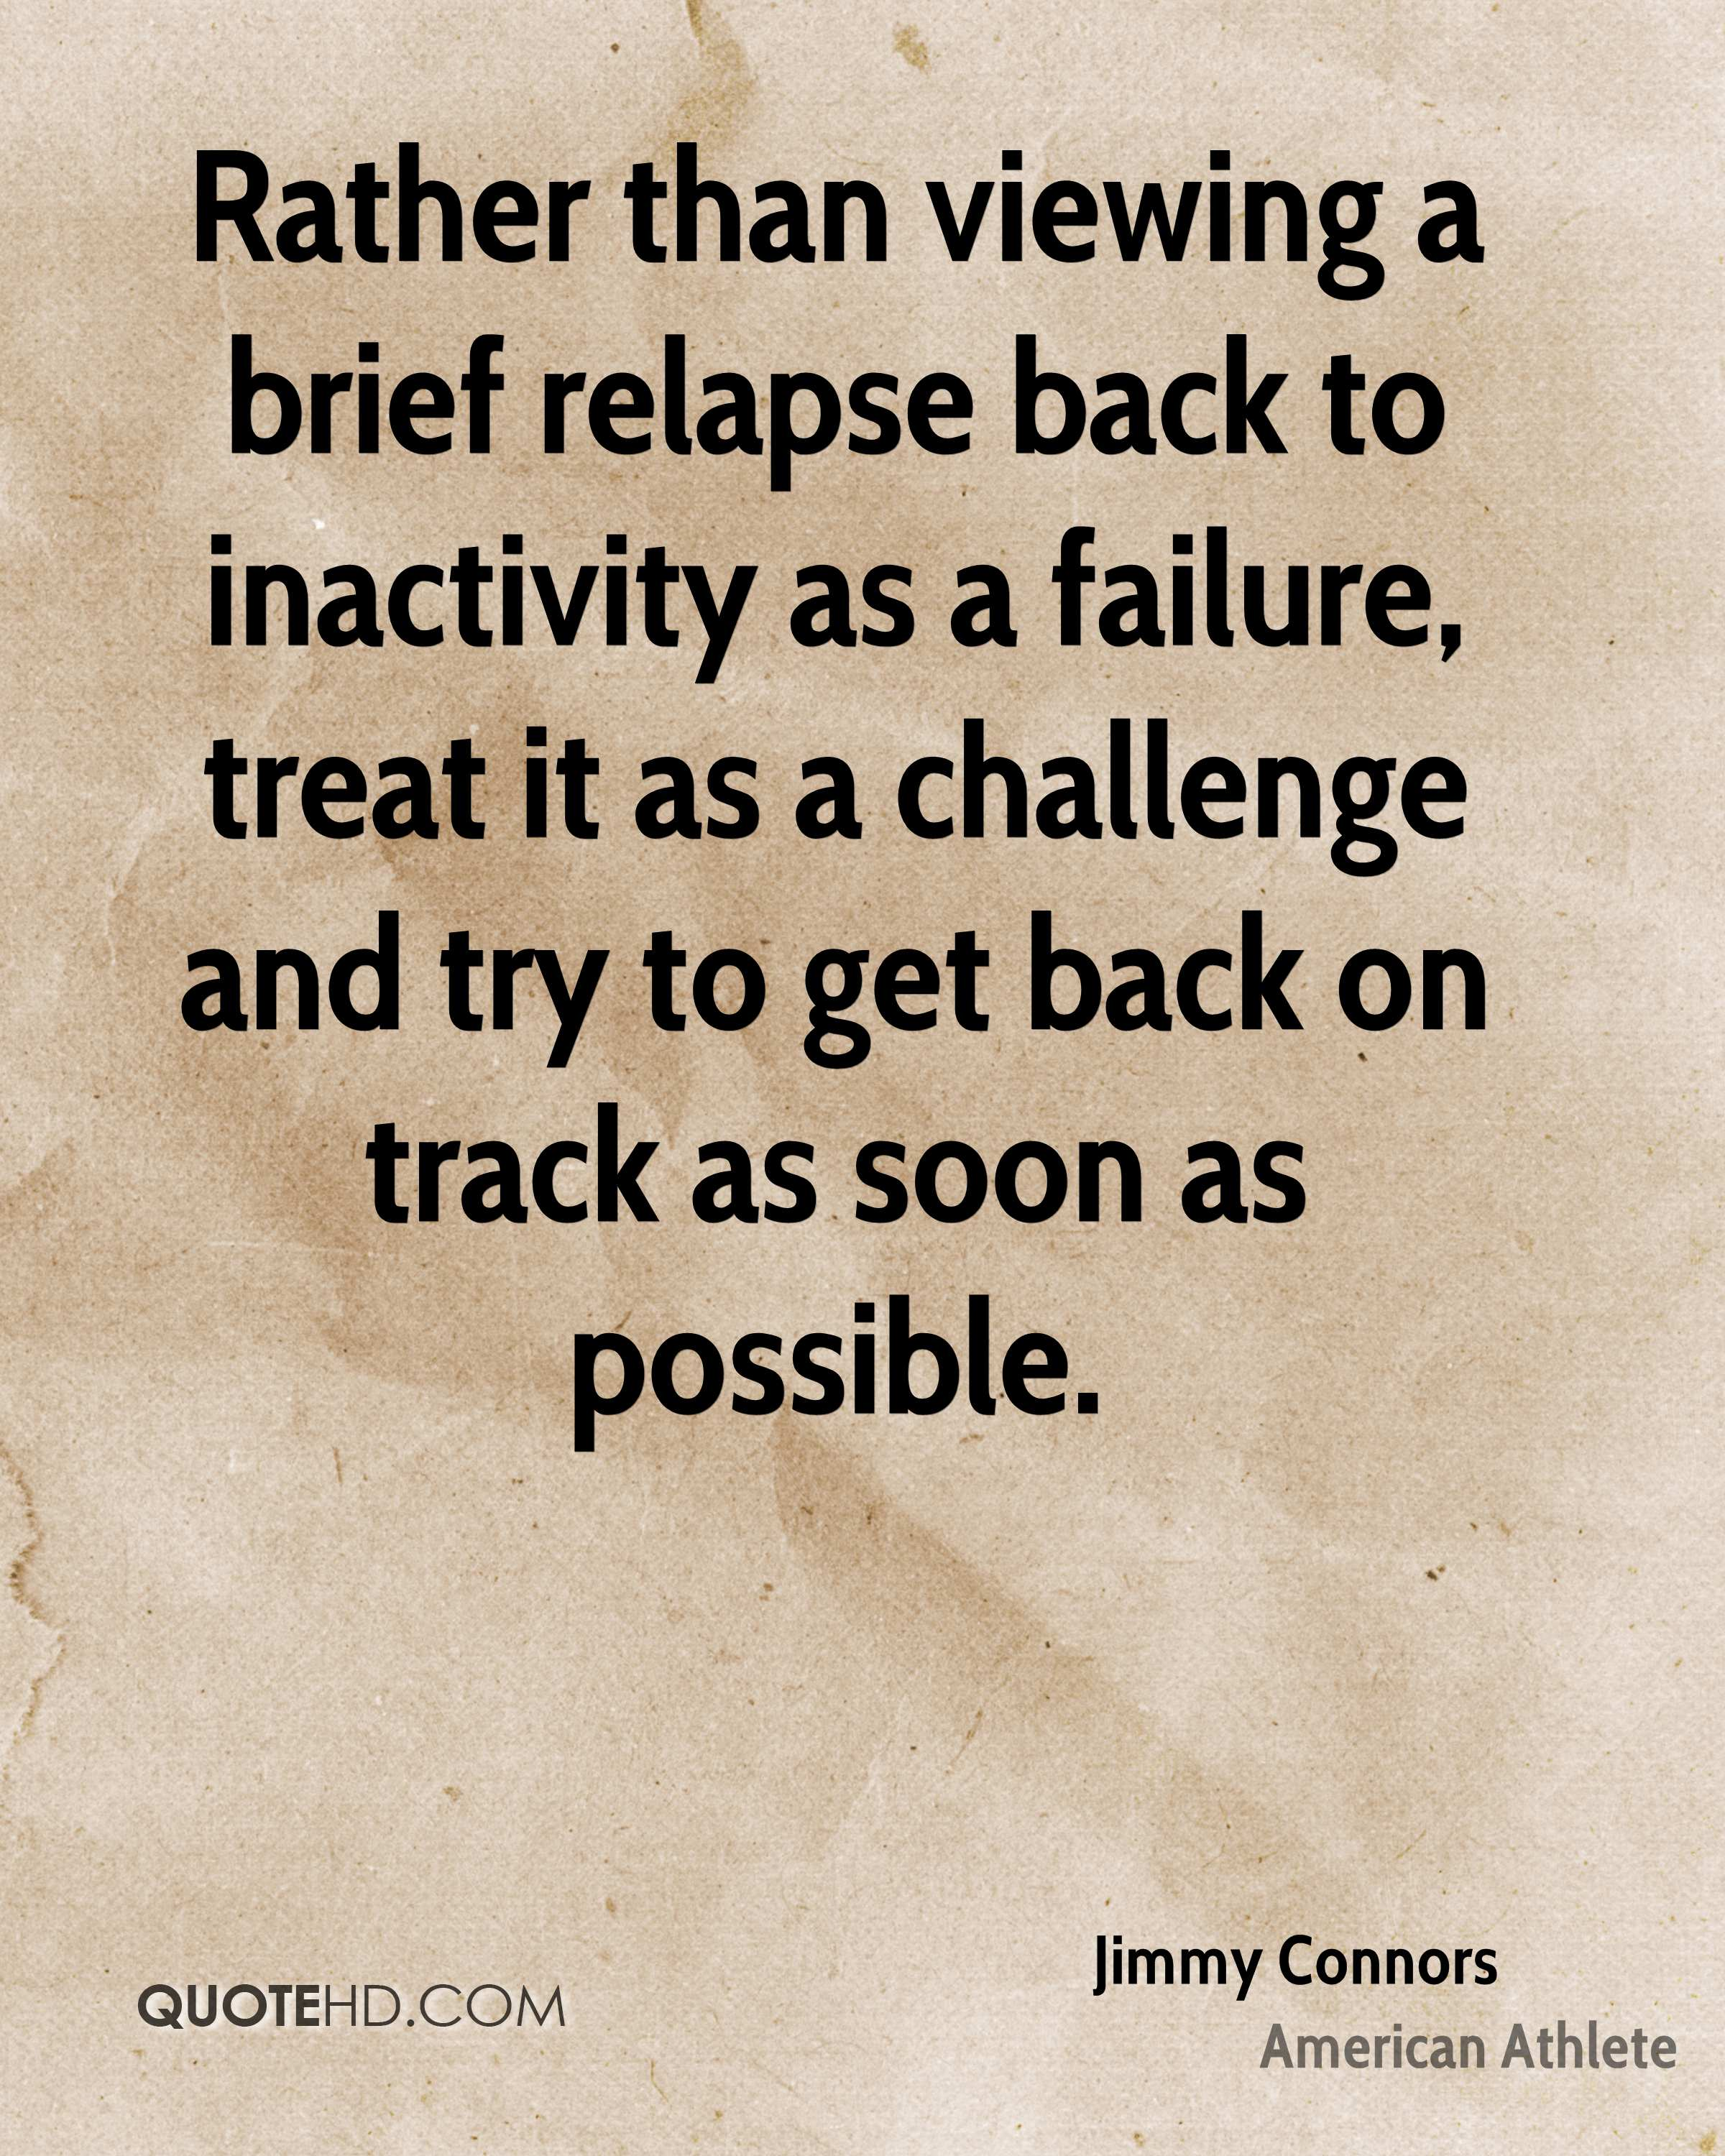 Rather than viewing a brief relapse back to inactivity as a failure, treat it as a challenge and try to get back on track as soon as possible.